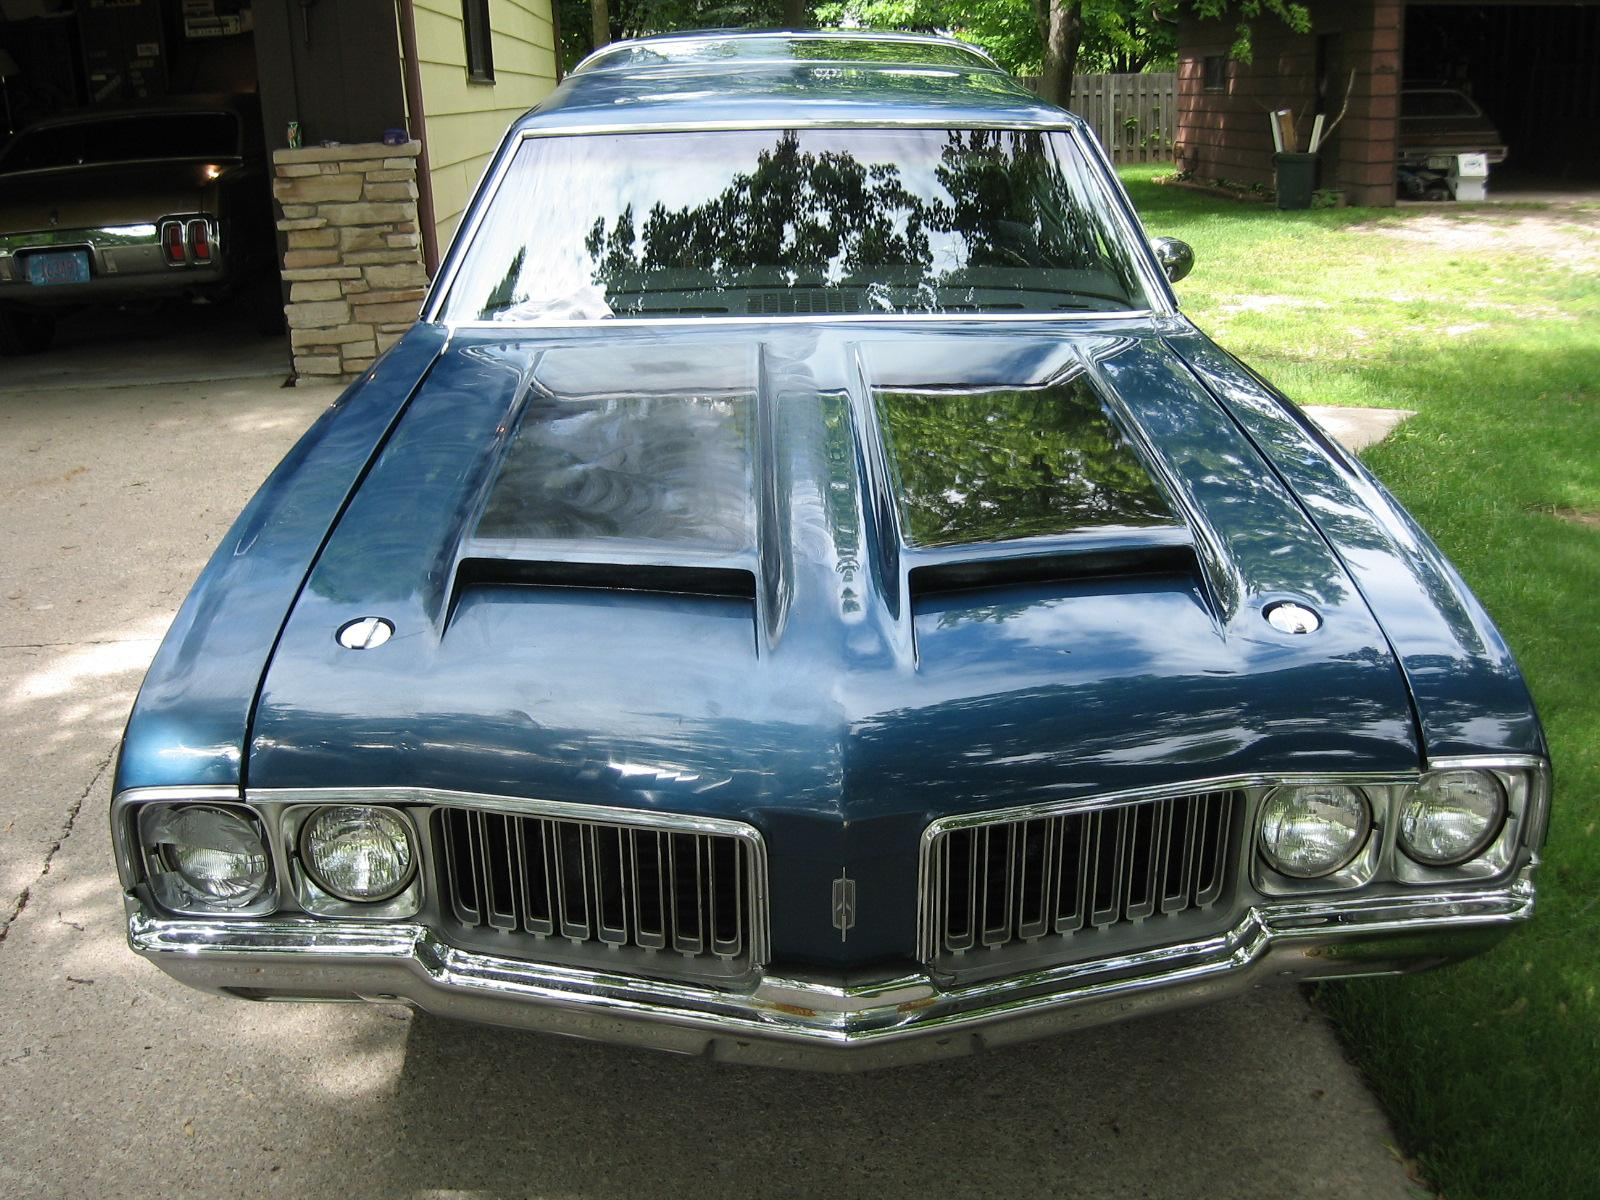 drcutlass1's 1970 Oldsmobile Vista Cruiser